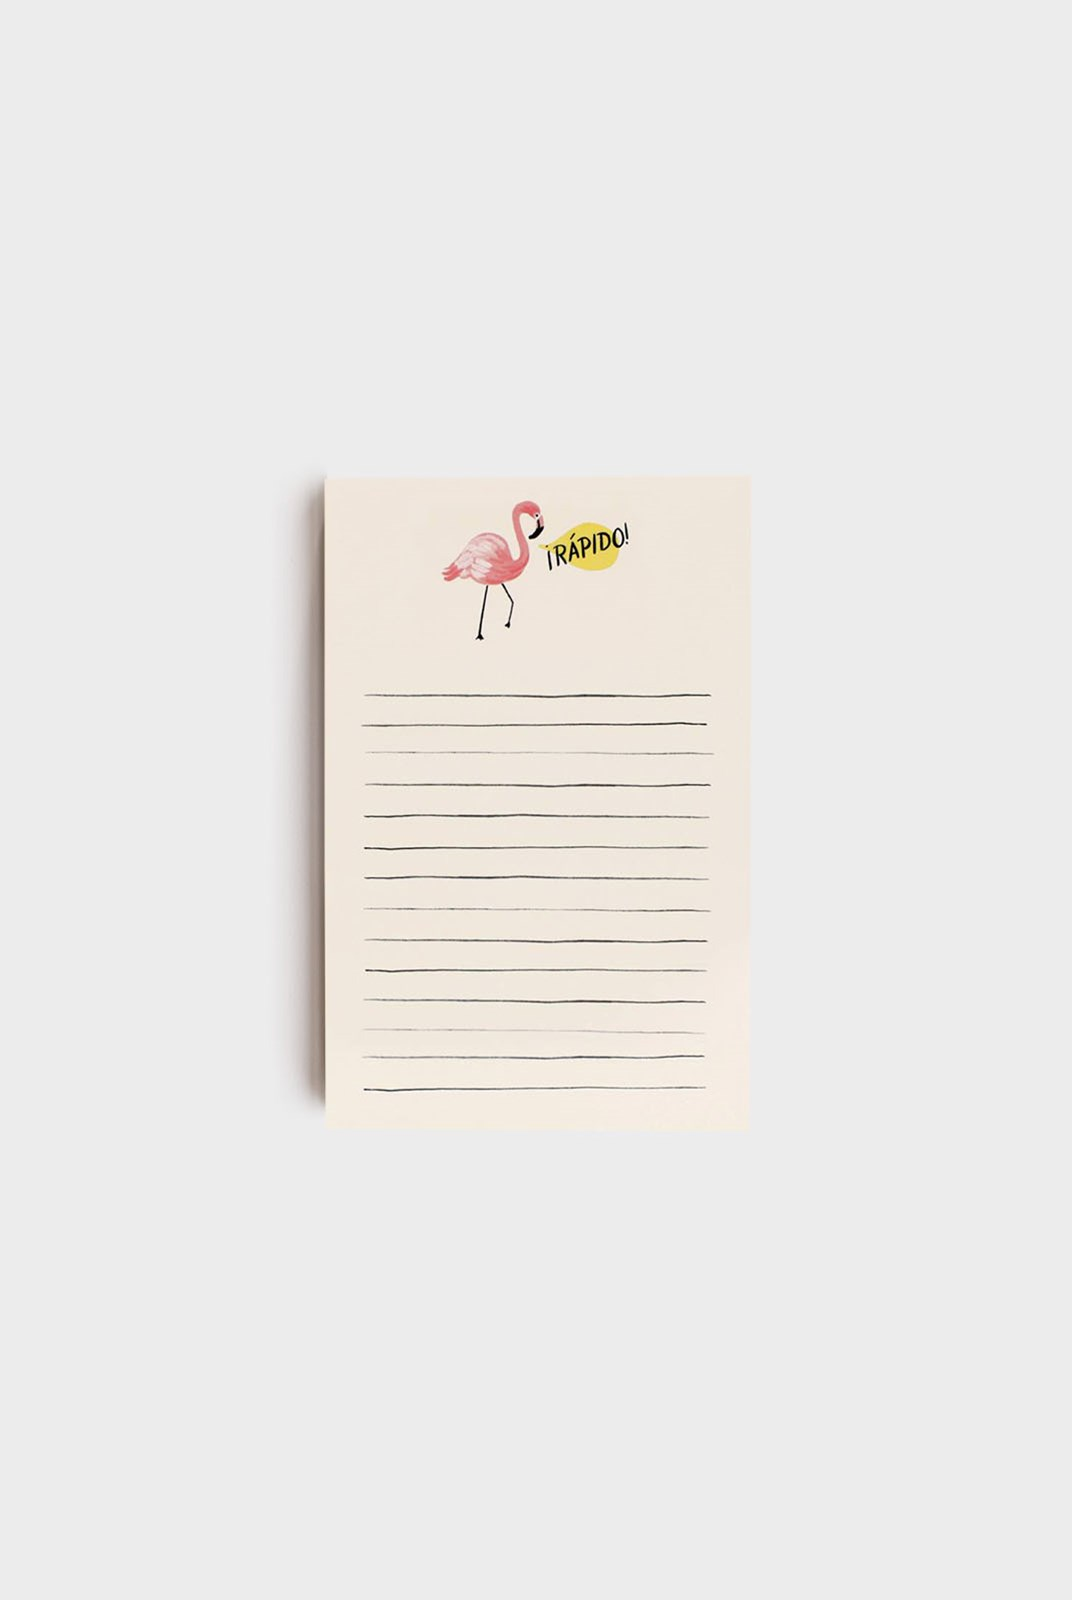 Rifle Paper Co - Notepad - Rapido